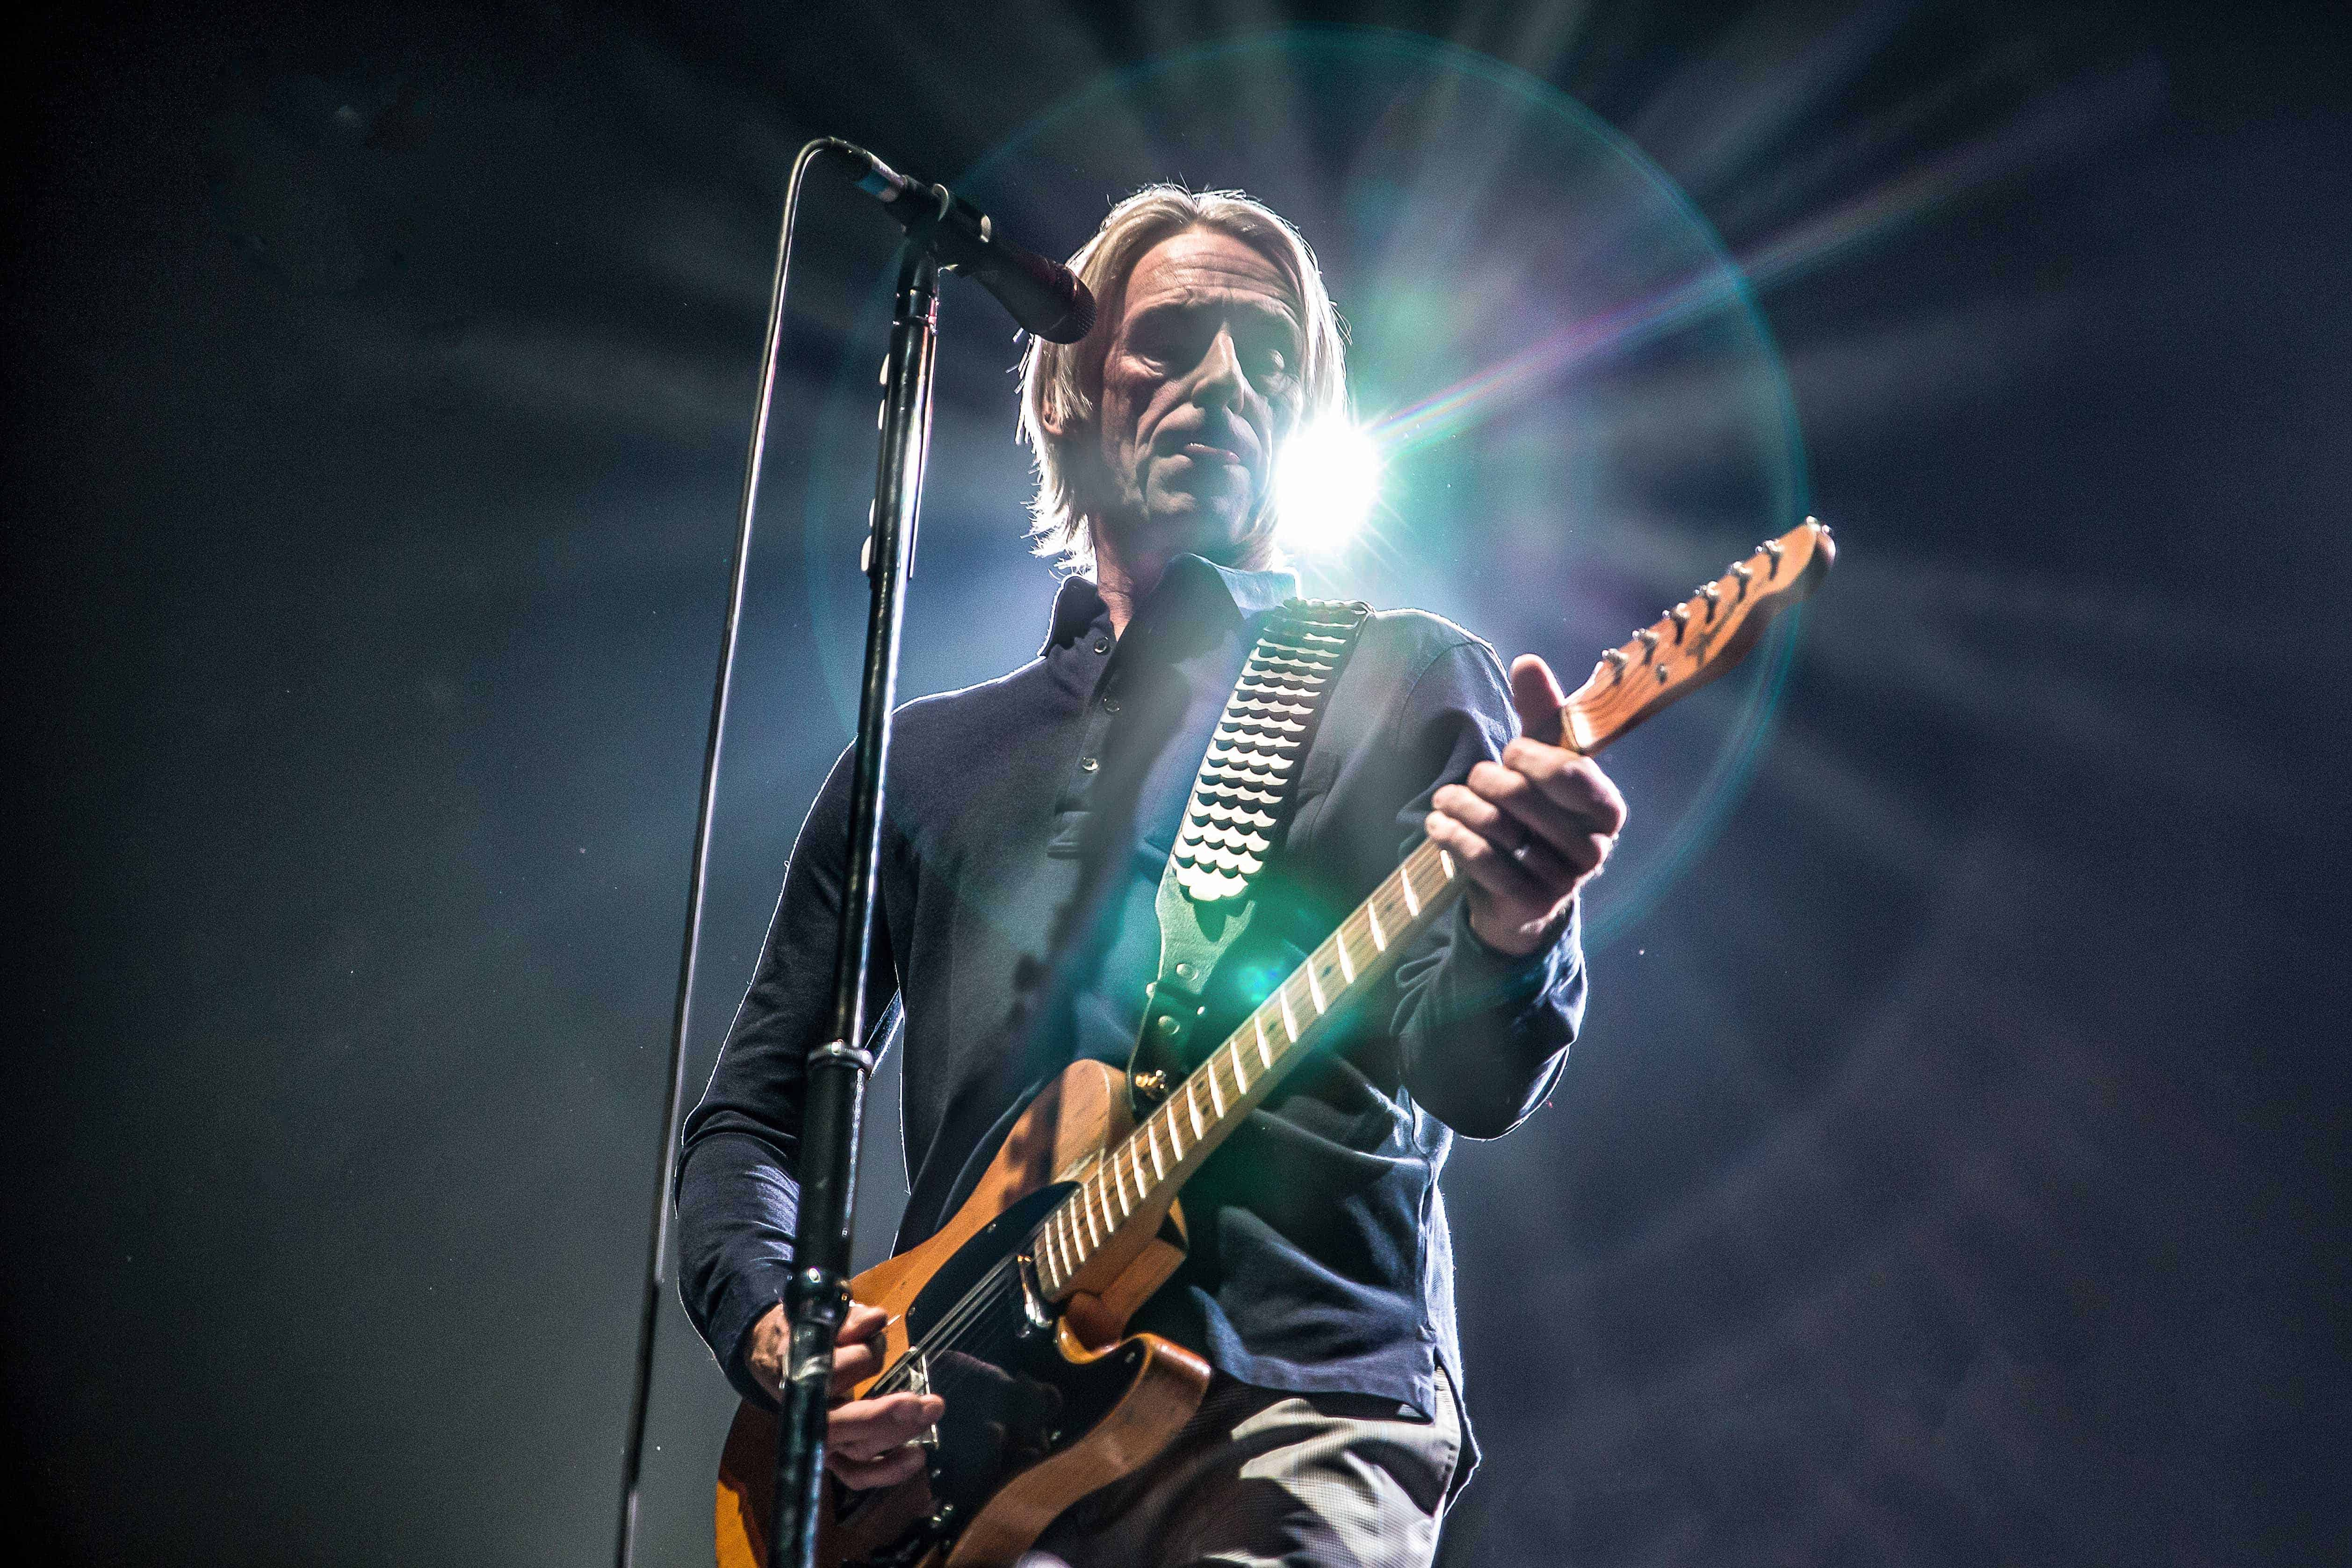 Legendary Mod Icon Paul Weller Delivers A 31 Song Set In Leeds